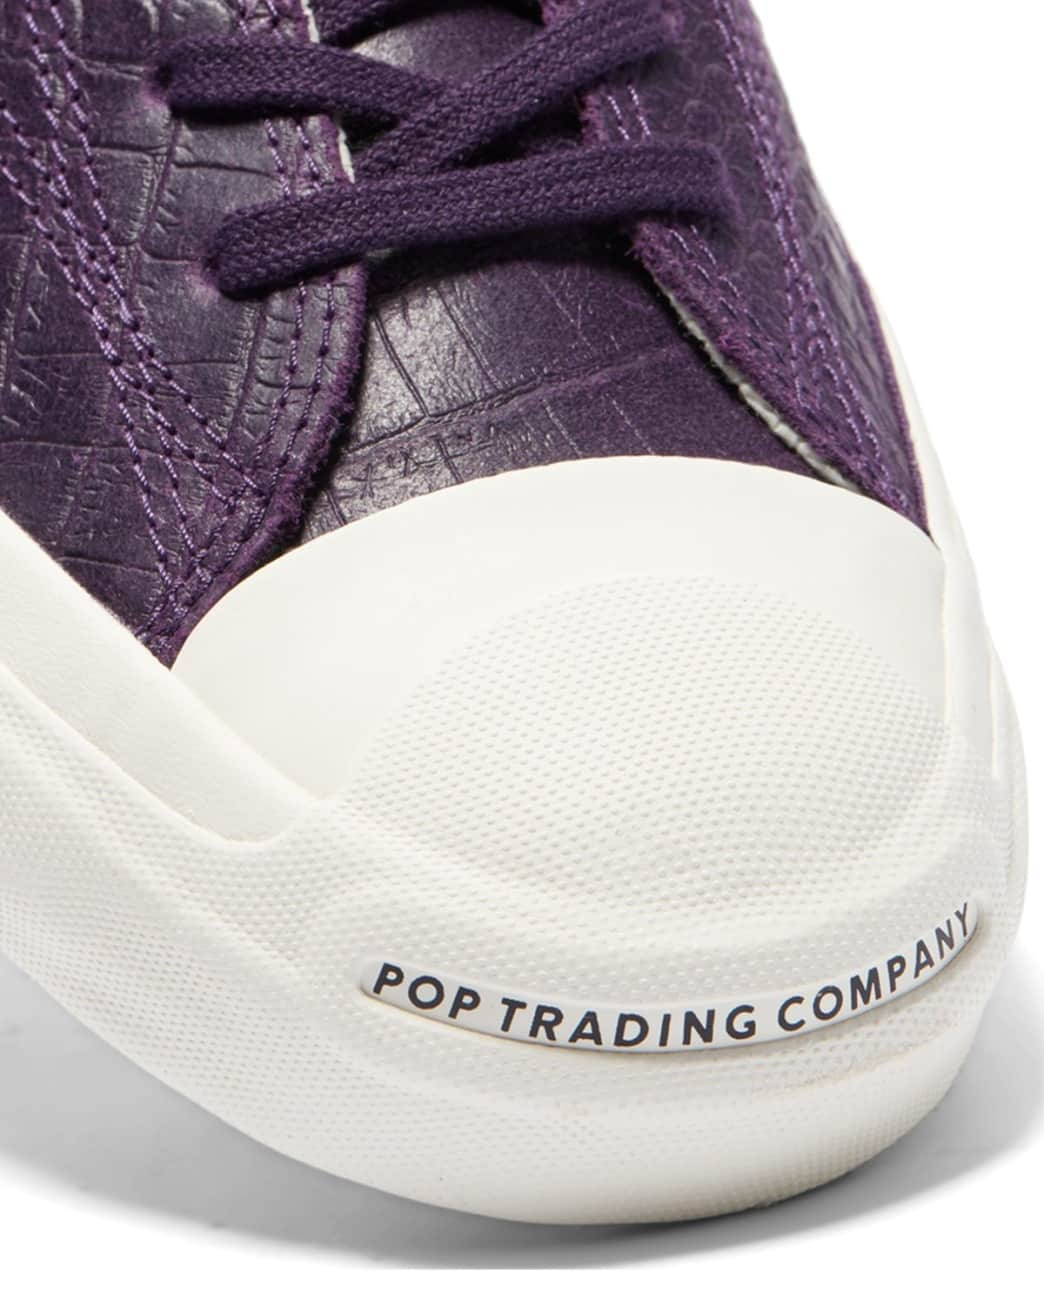 Converse CONS x Pop Trading Company JP Pro Ox Shoes - Dark Purple 'Dragonskin' | Shoes by Converse Cons 5